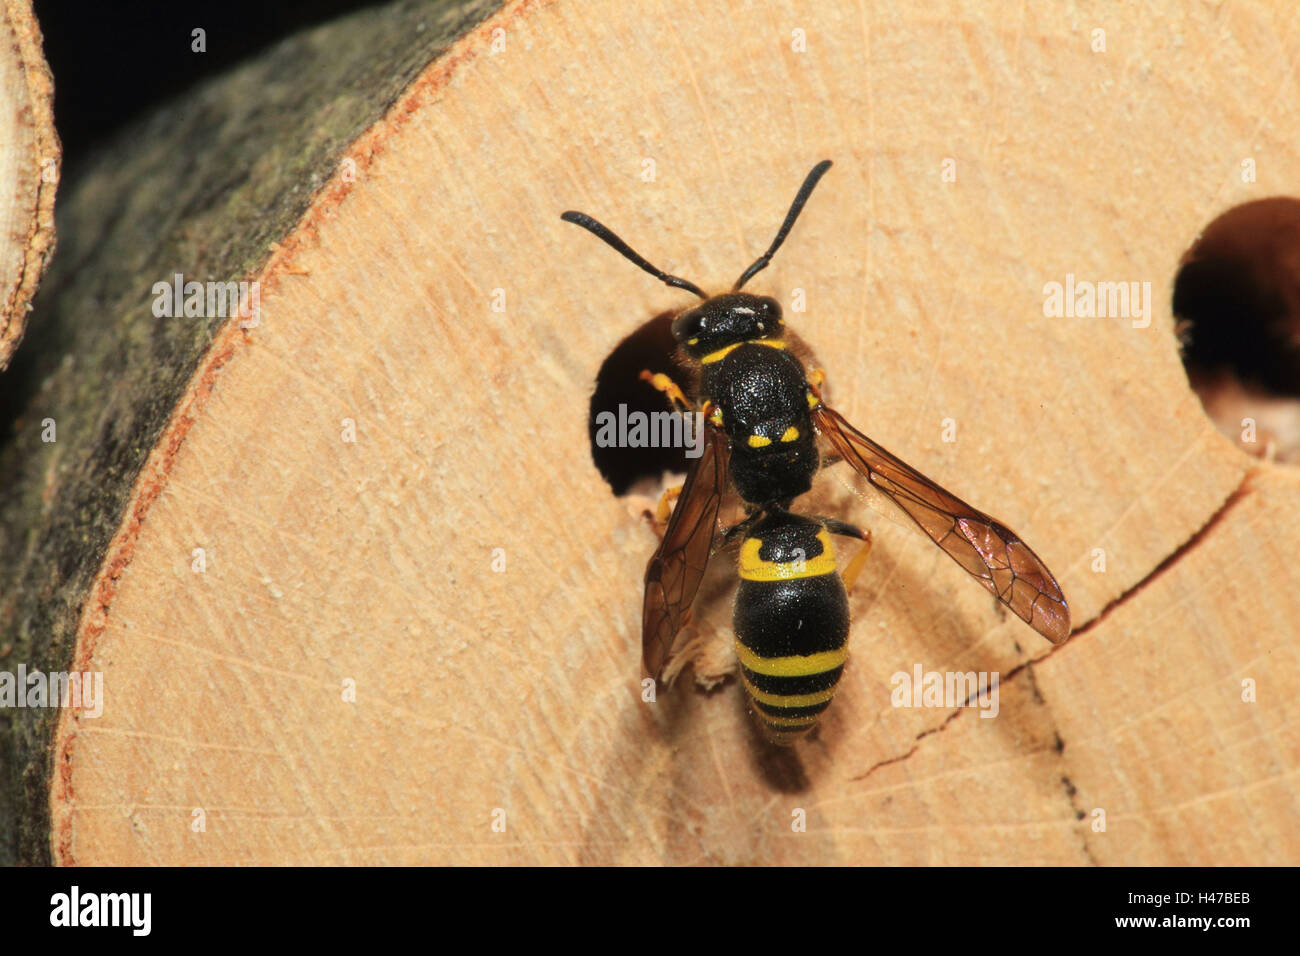 Hardhead's fly, brood pit, medium close-up, landscape format, insect, animal, wild animal, insect house, fly, - Stock Image